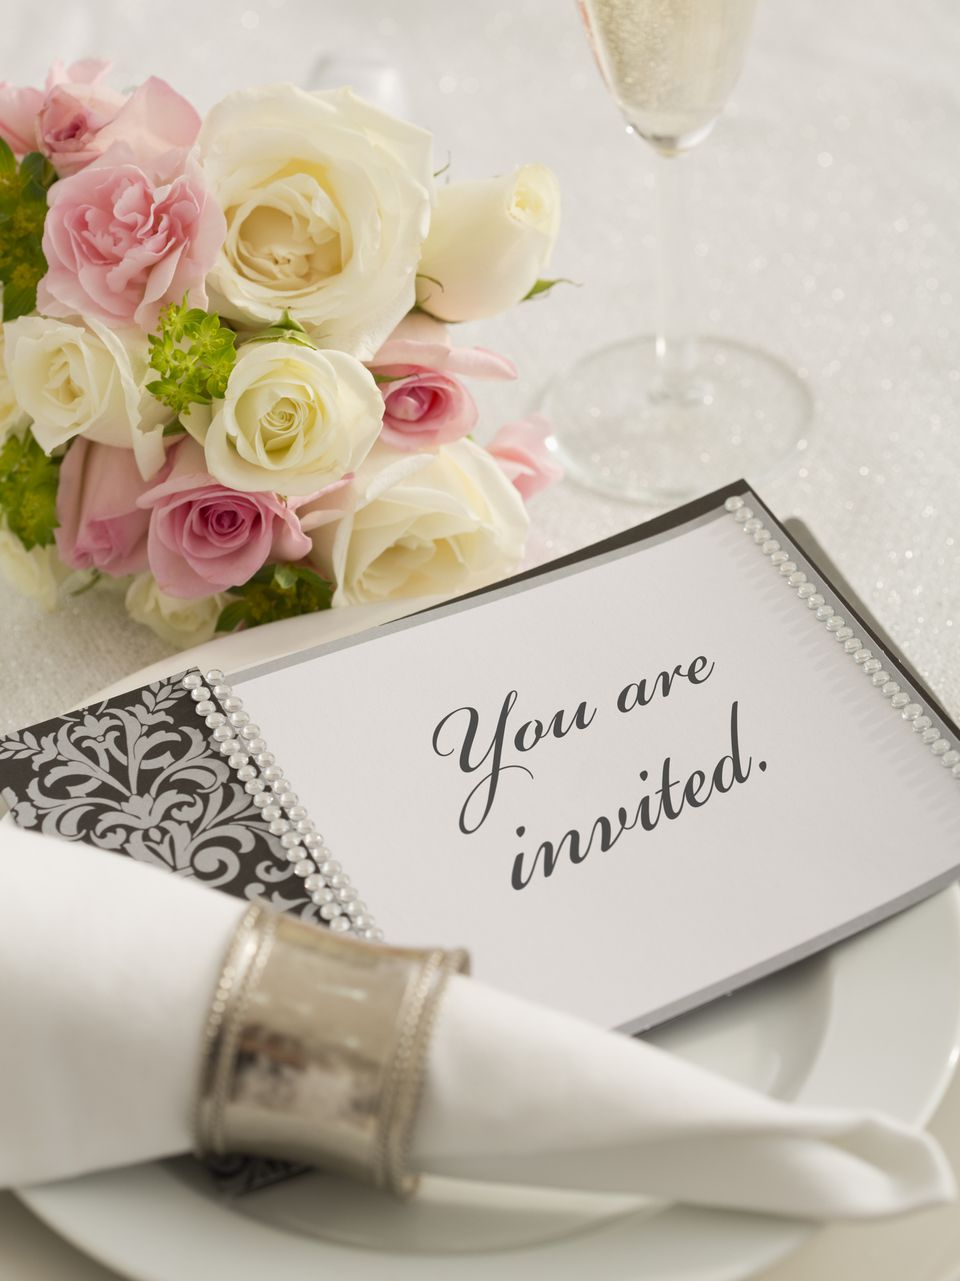 wedding invitation on a dinner plate with bouquet